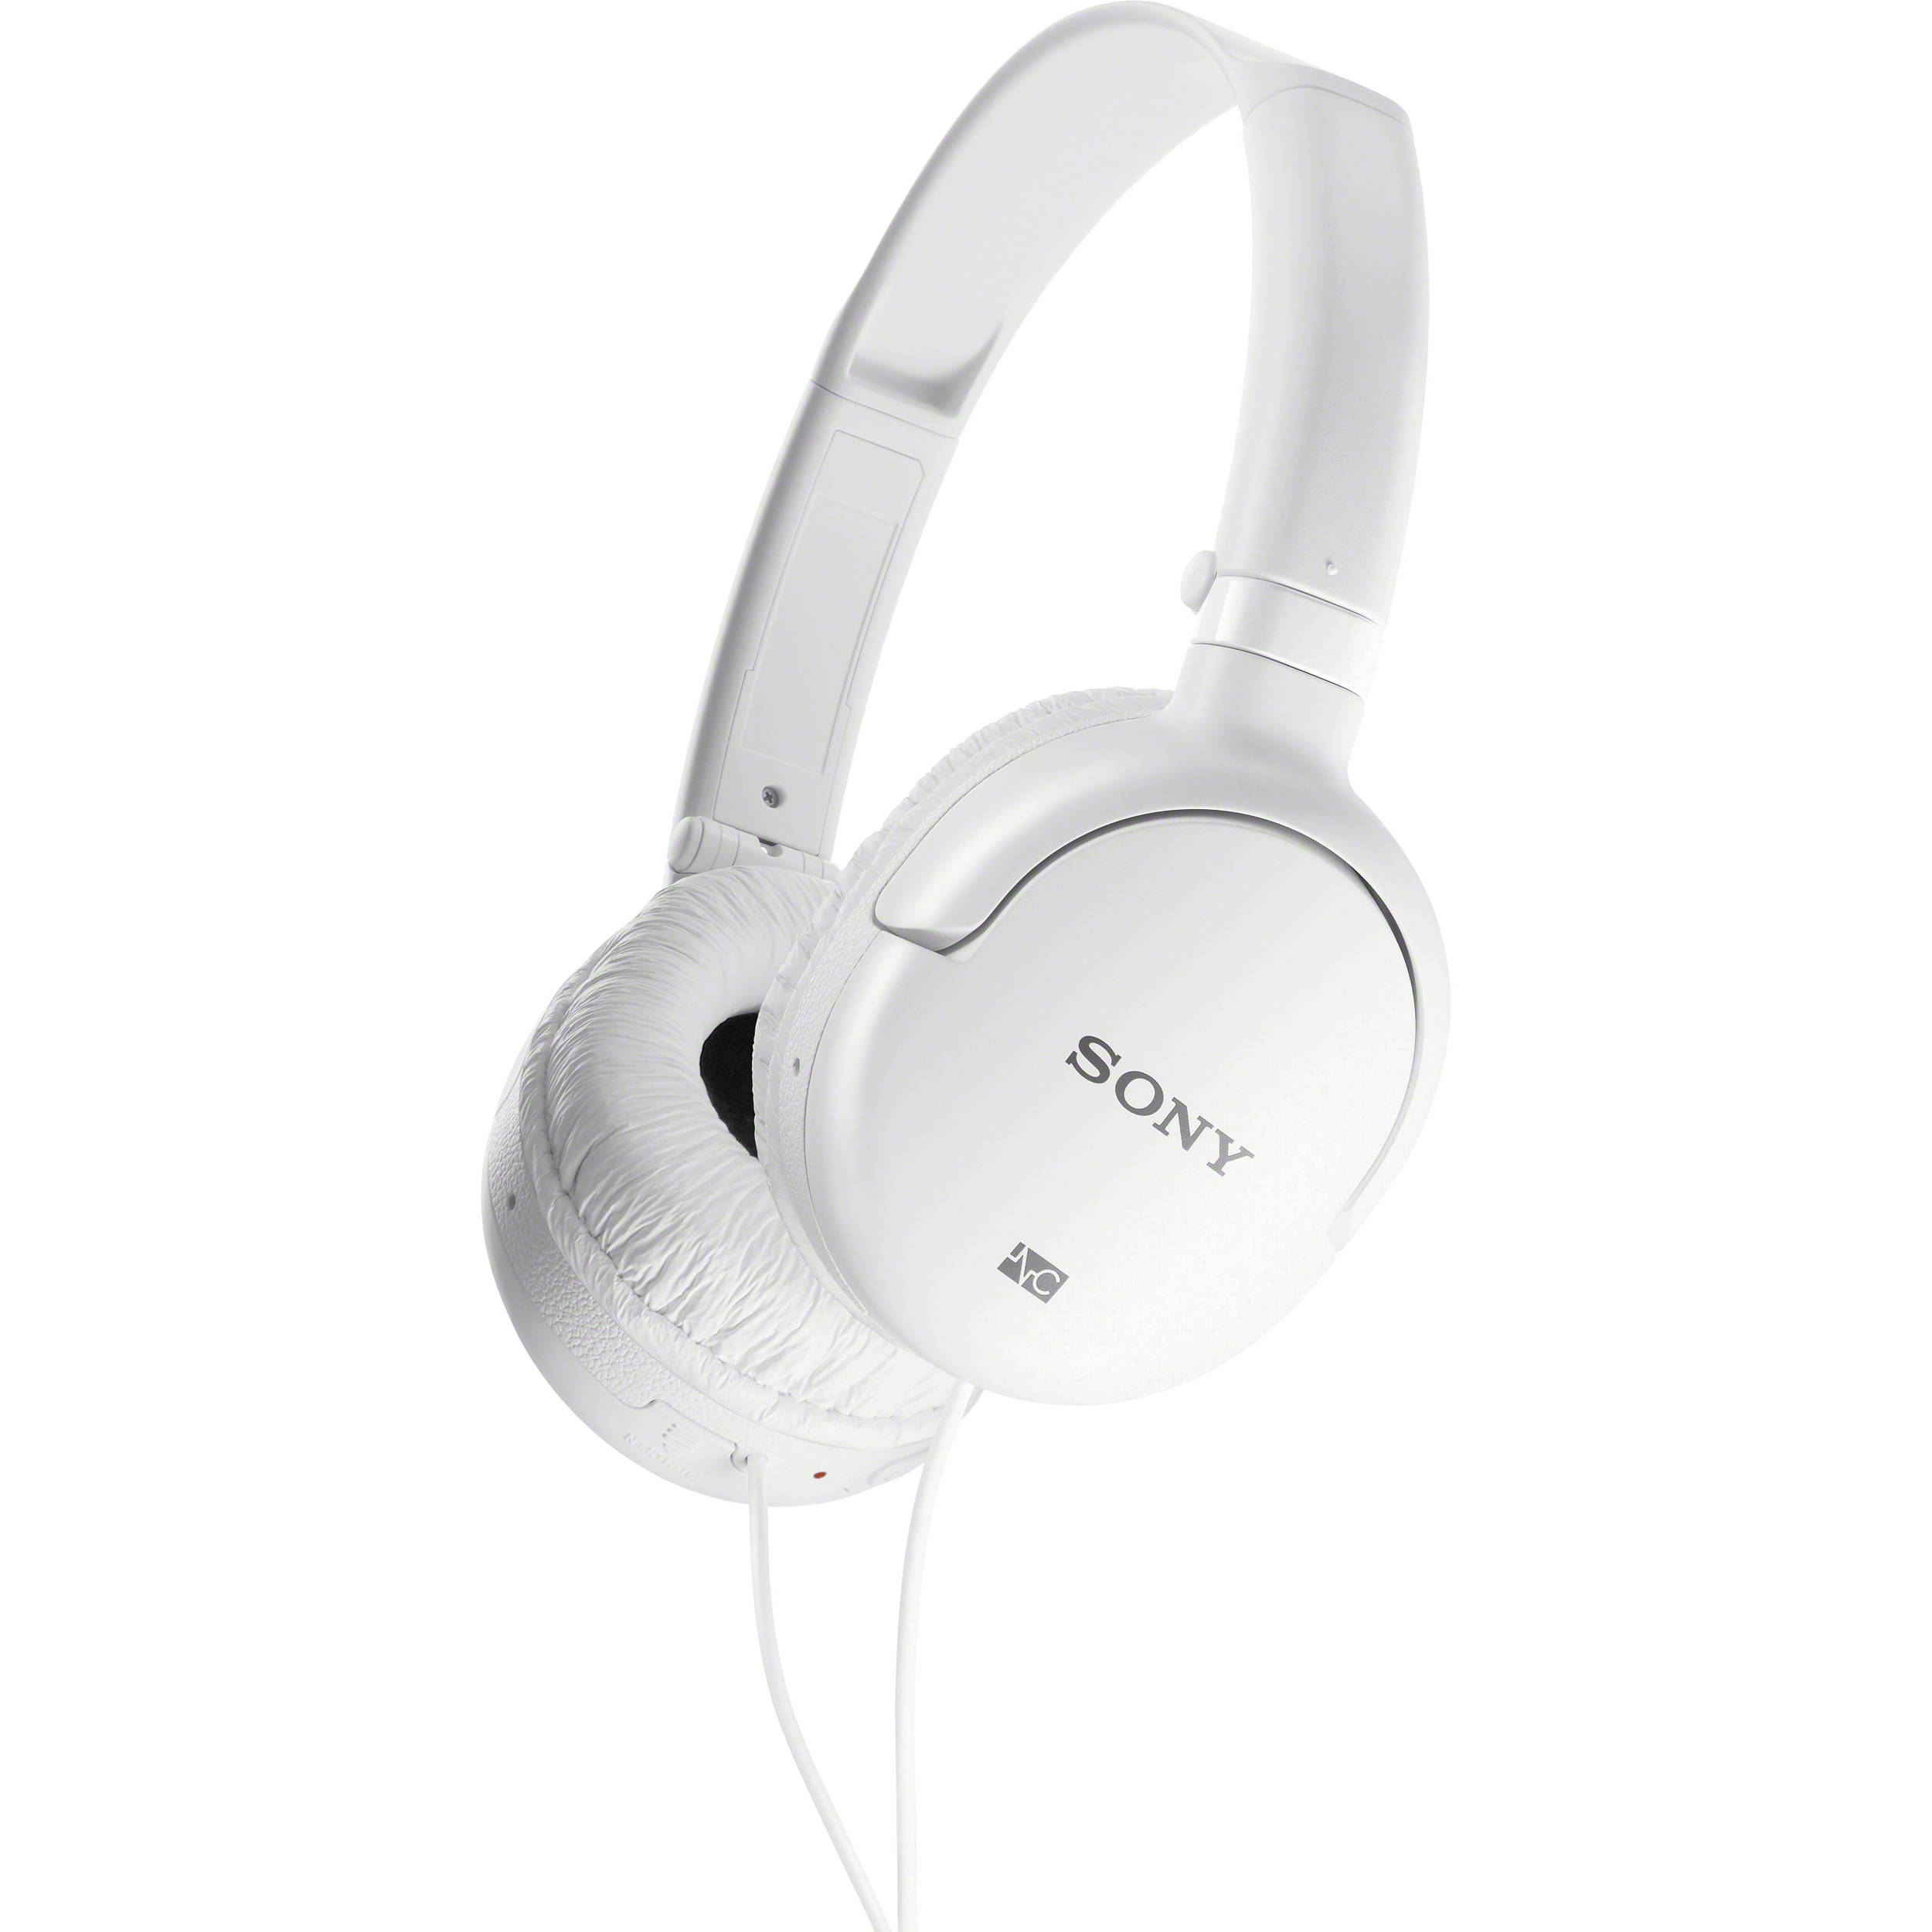 Bluetooth earphones noise cancelling - sony noise cancelling headphones white